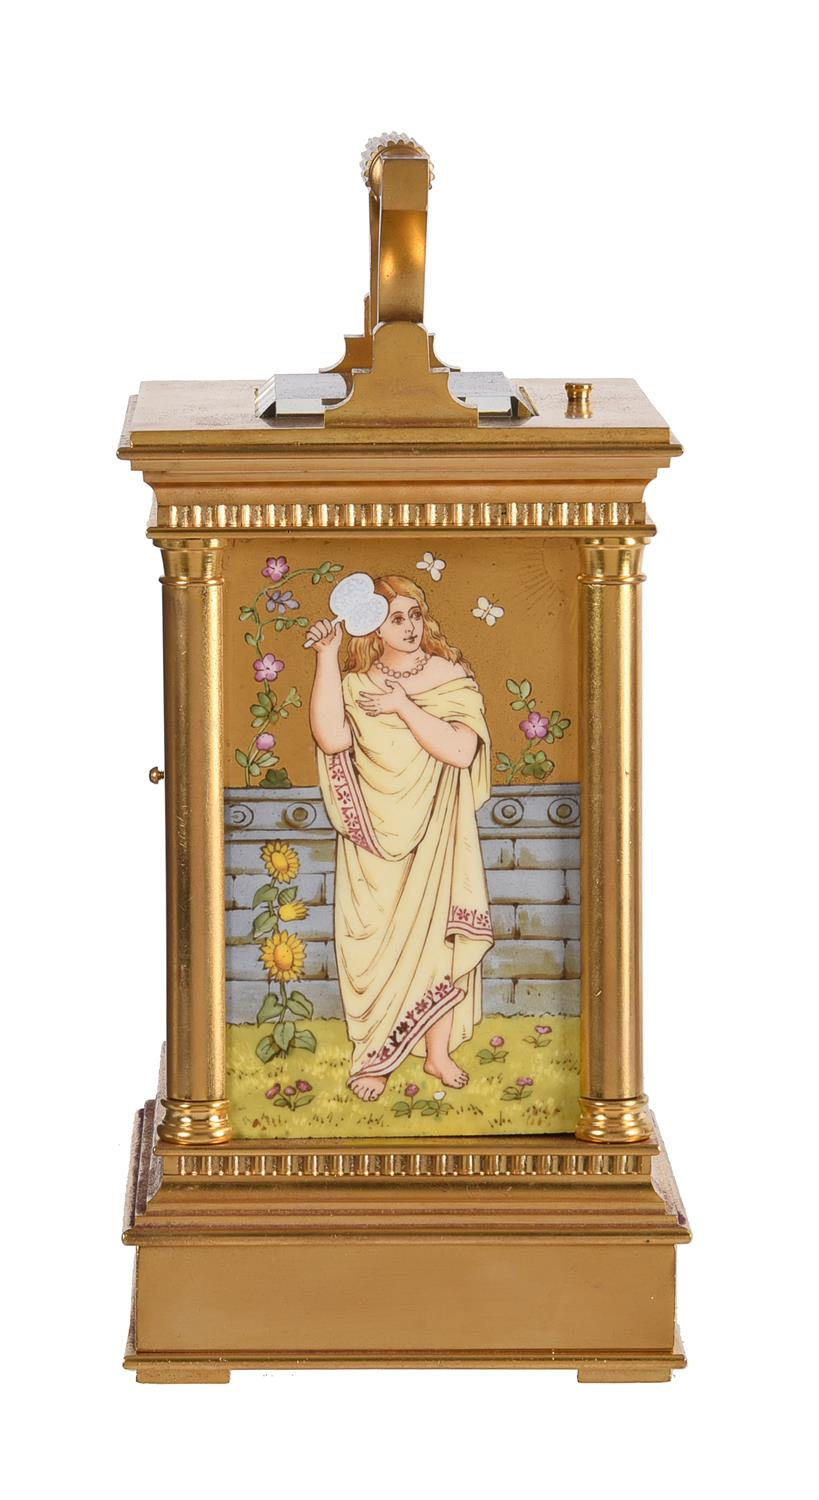 A fine French gilt brass carriage clock with painted porcelain panels and push-button repeat - Image 3 of 7